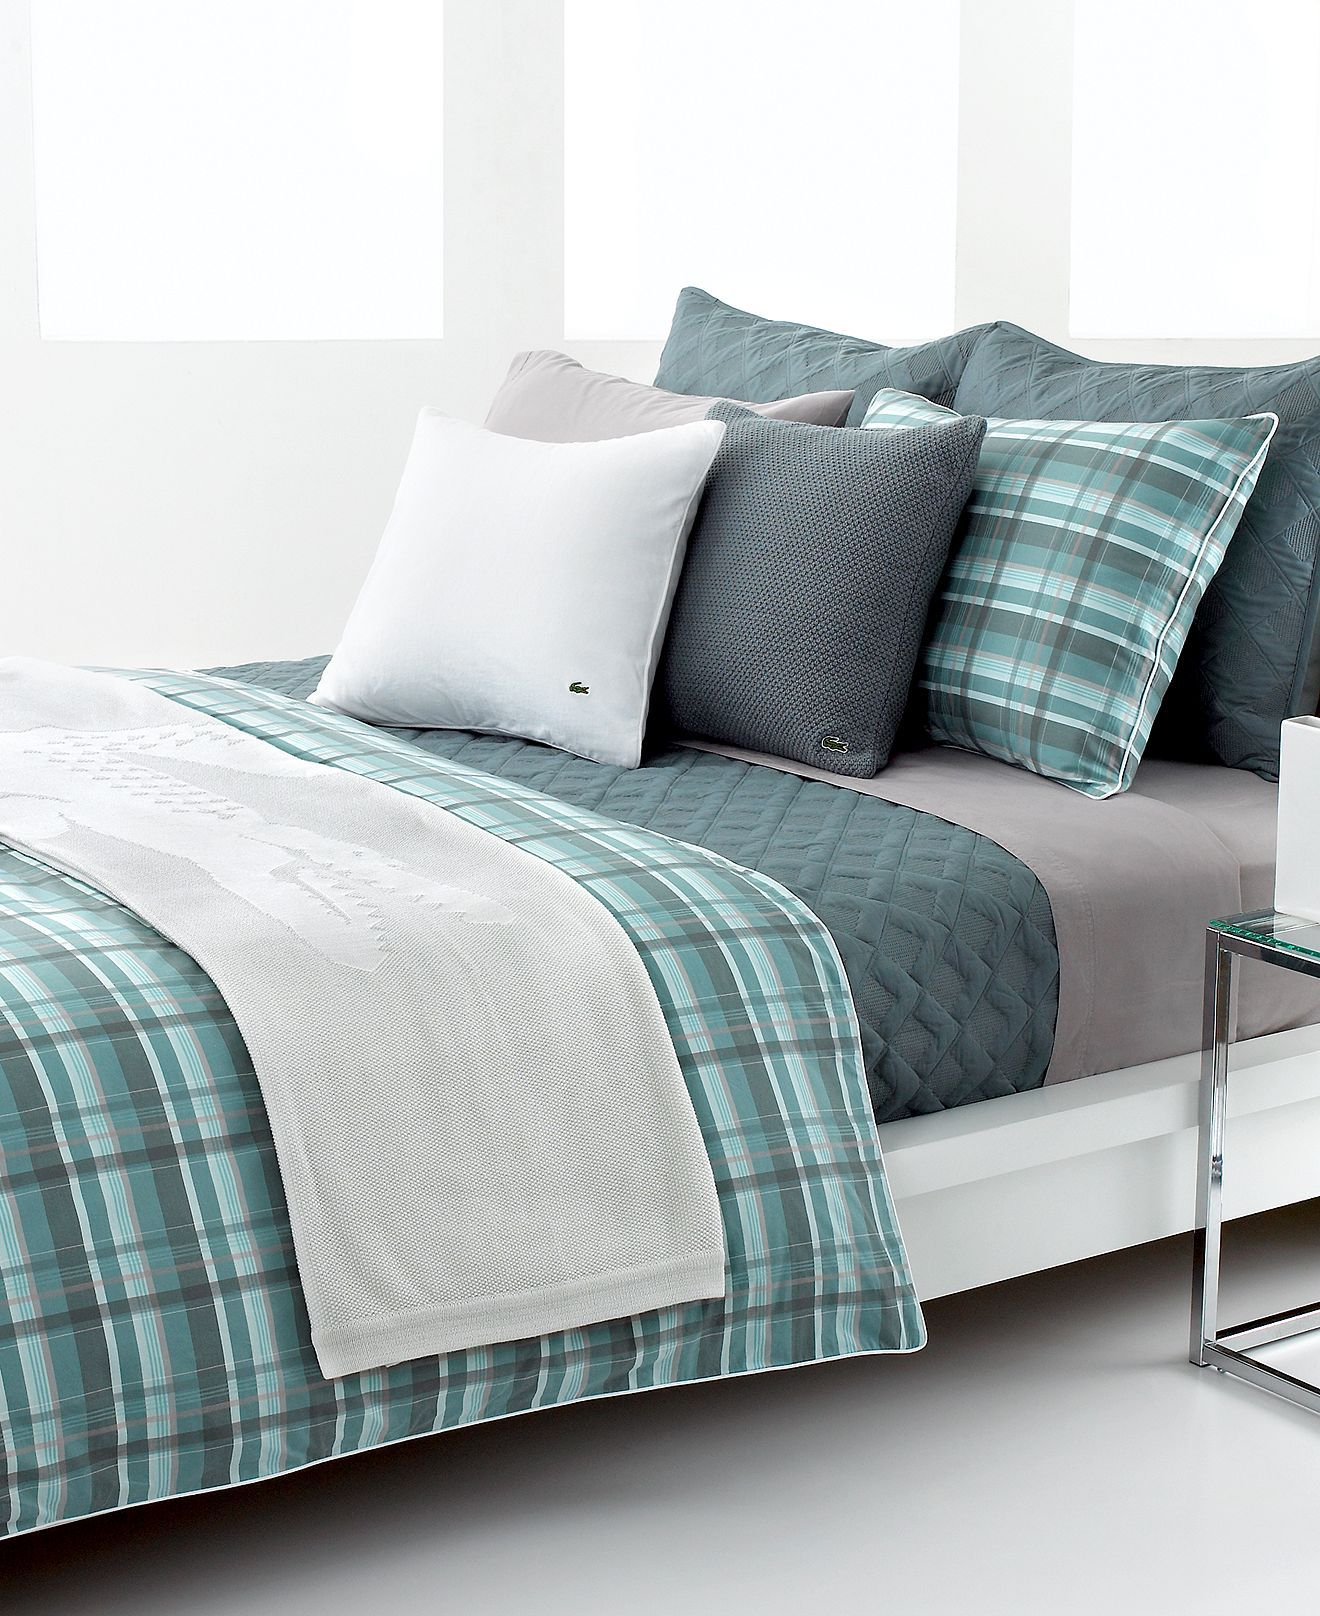 home lacoste collection we and by bedding vapor sets southern washed sheet solid gray duvet cotton amazing new cover got tide starboard this